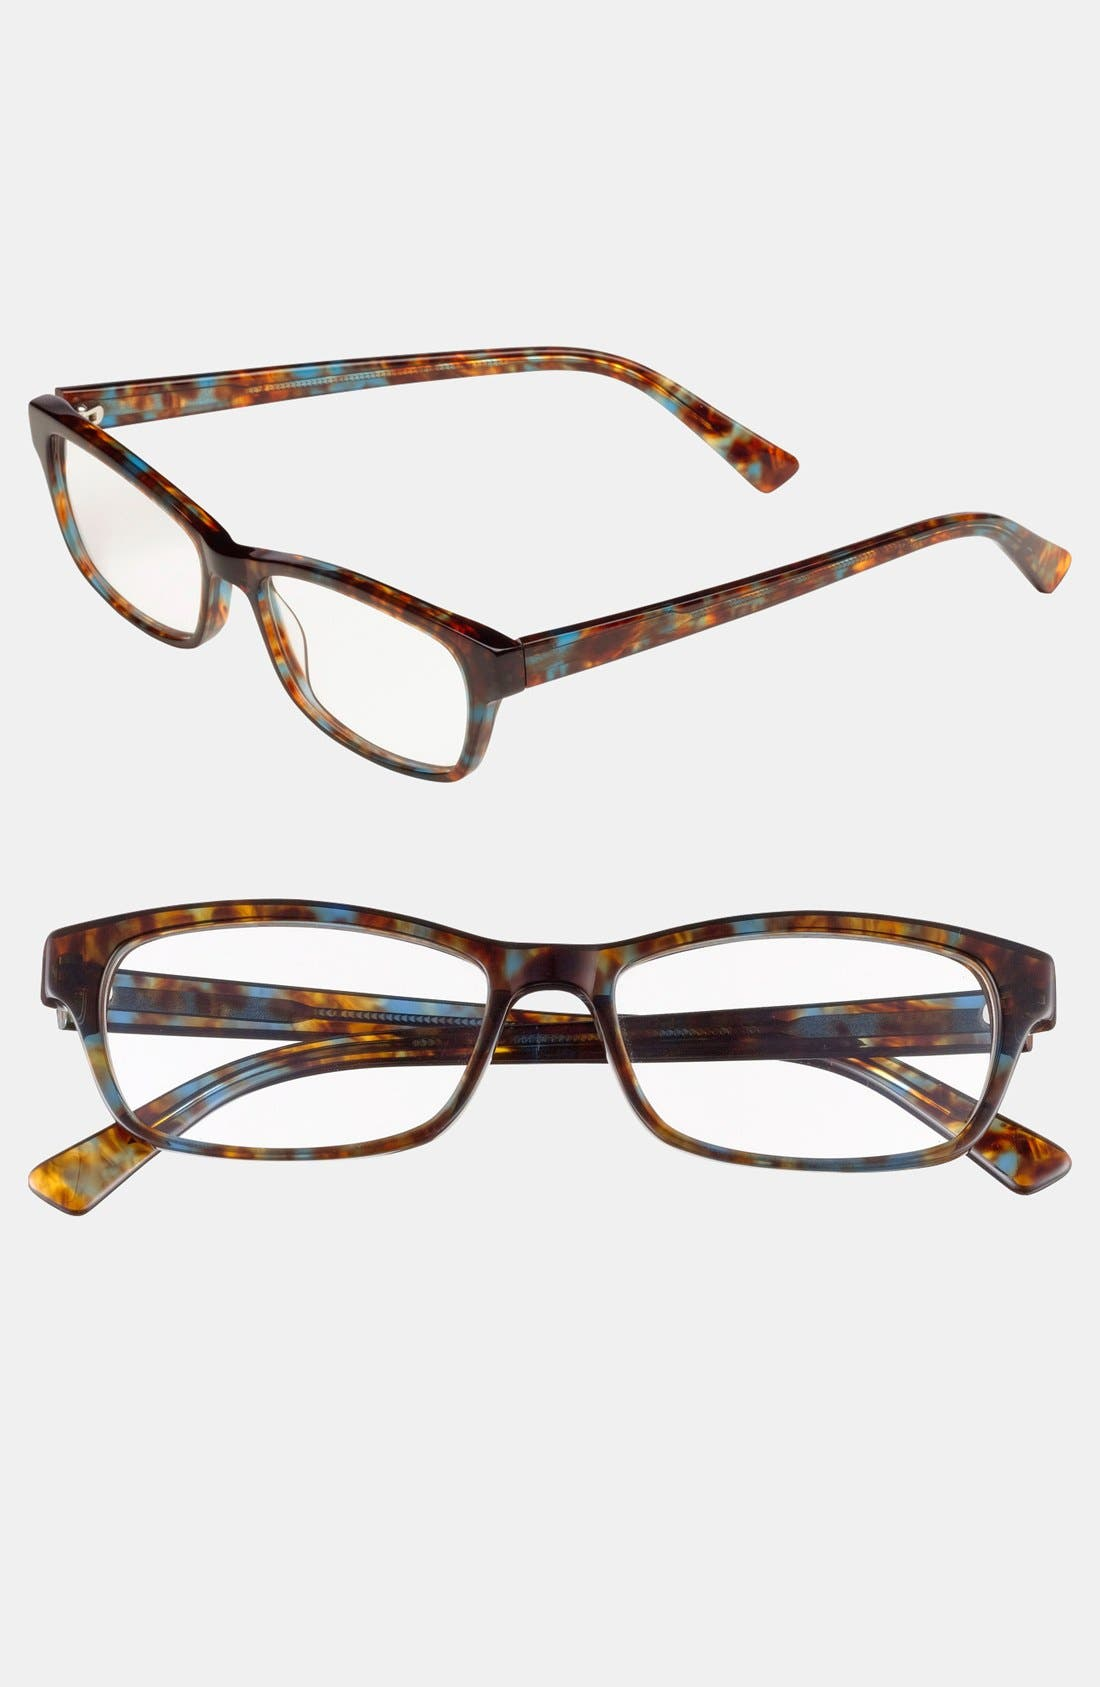 Main Image - I Line Eyewear 'Jewel' 53mm Reading Glasses